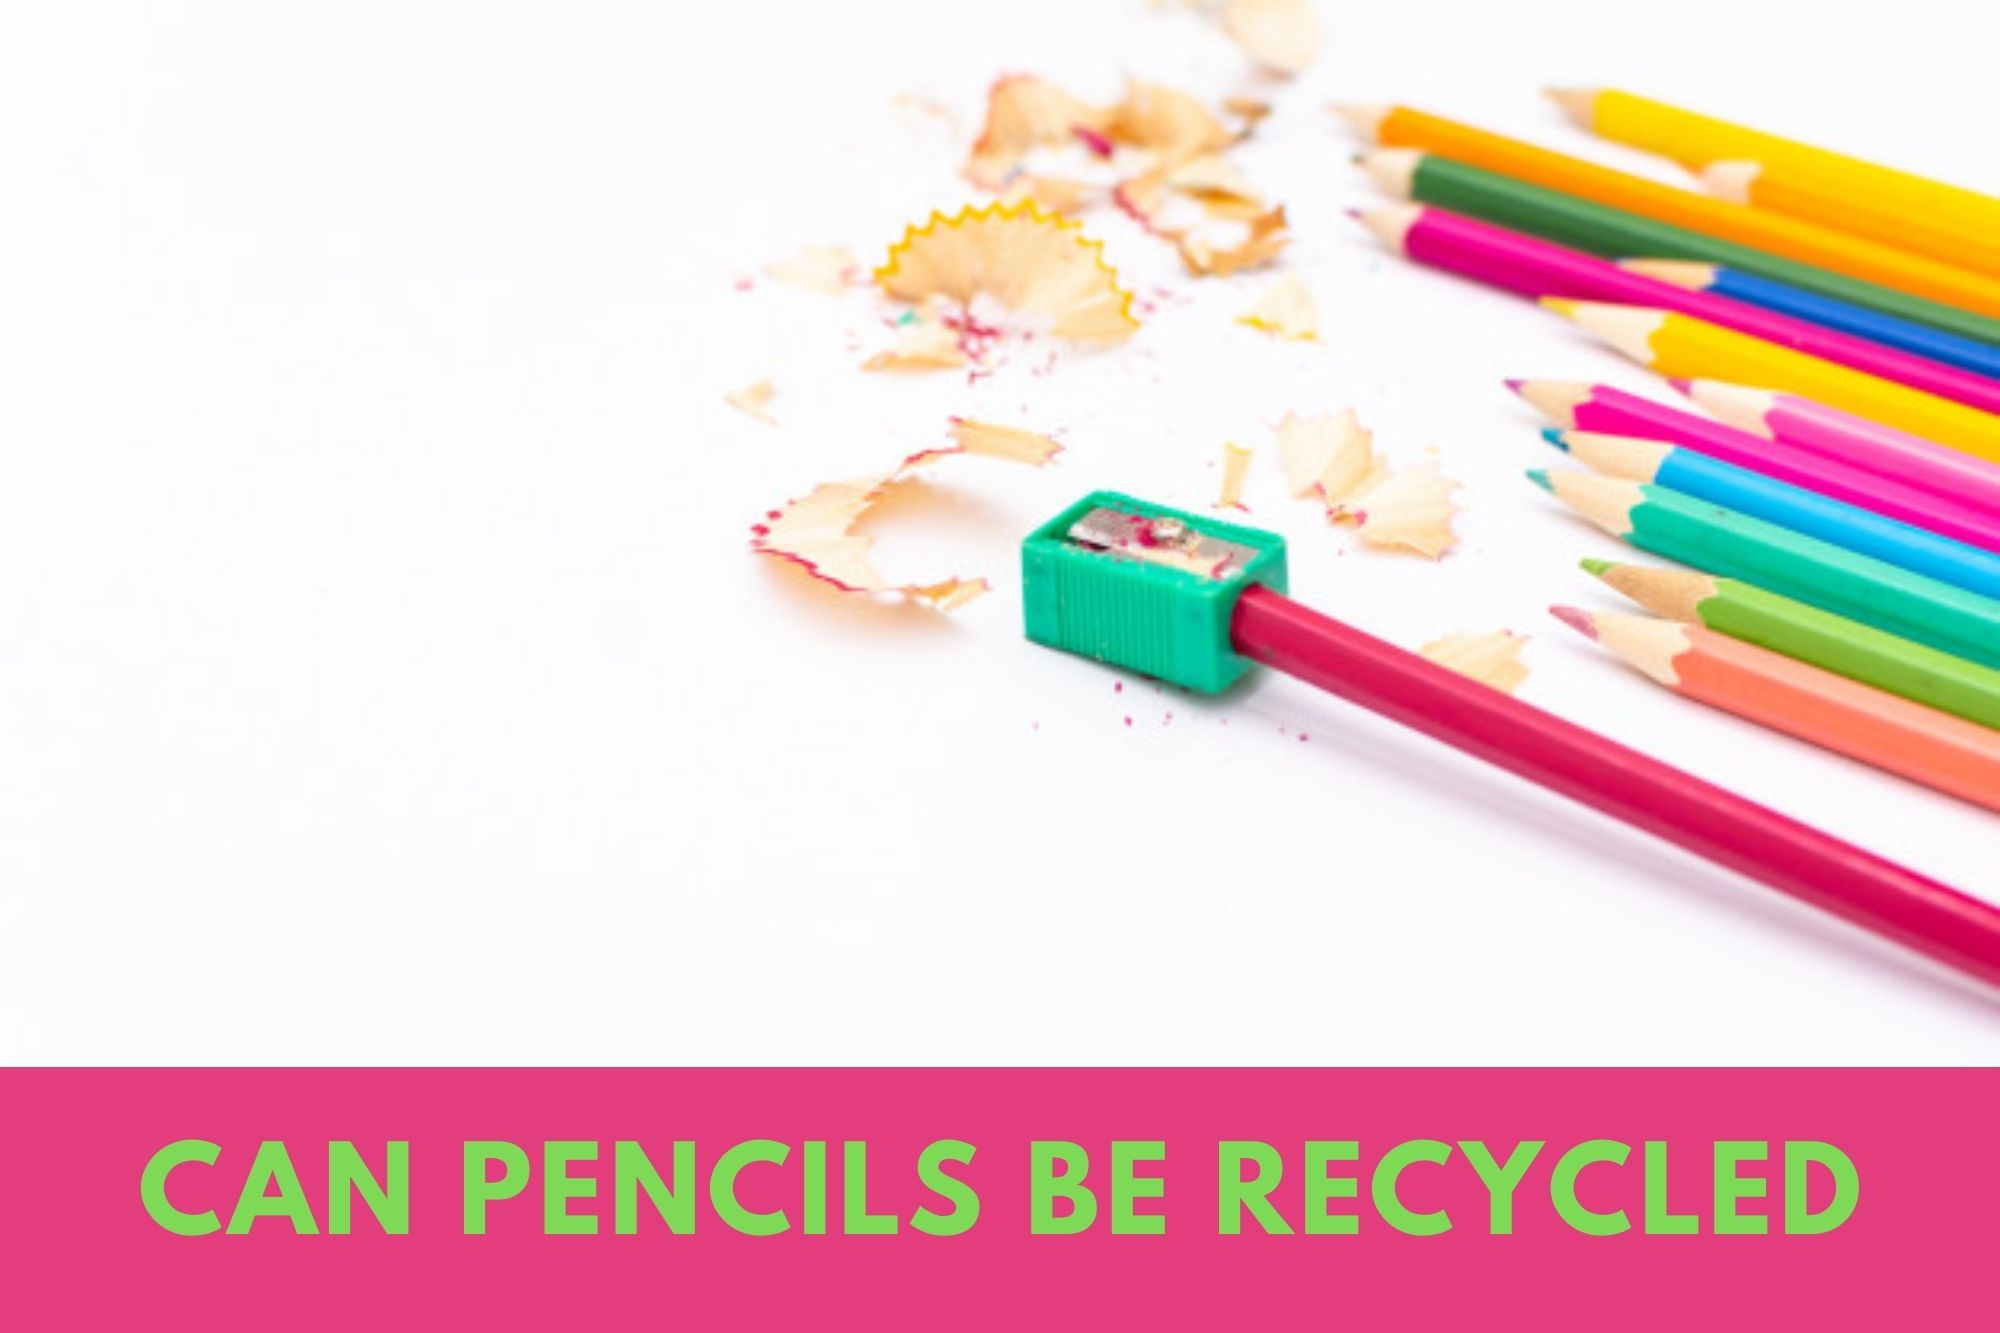 Can Pencils be Recycled?